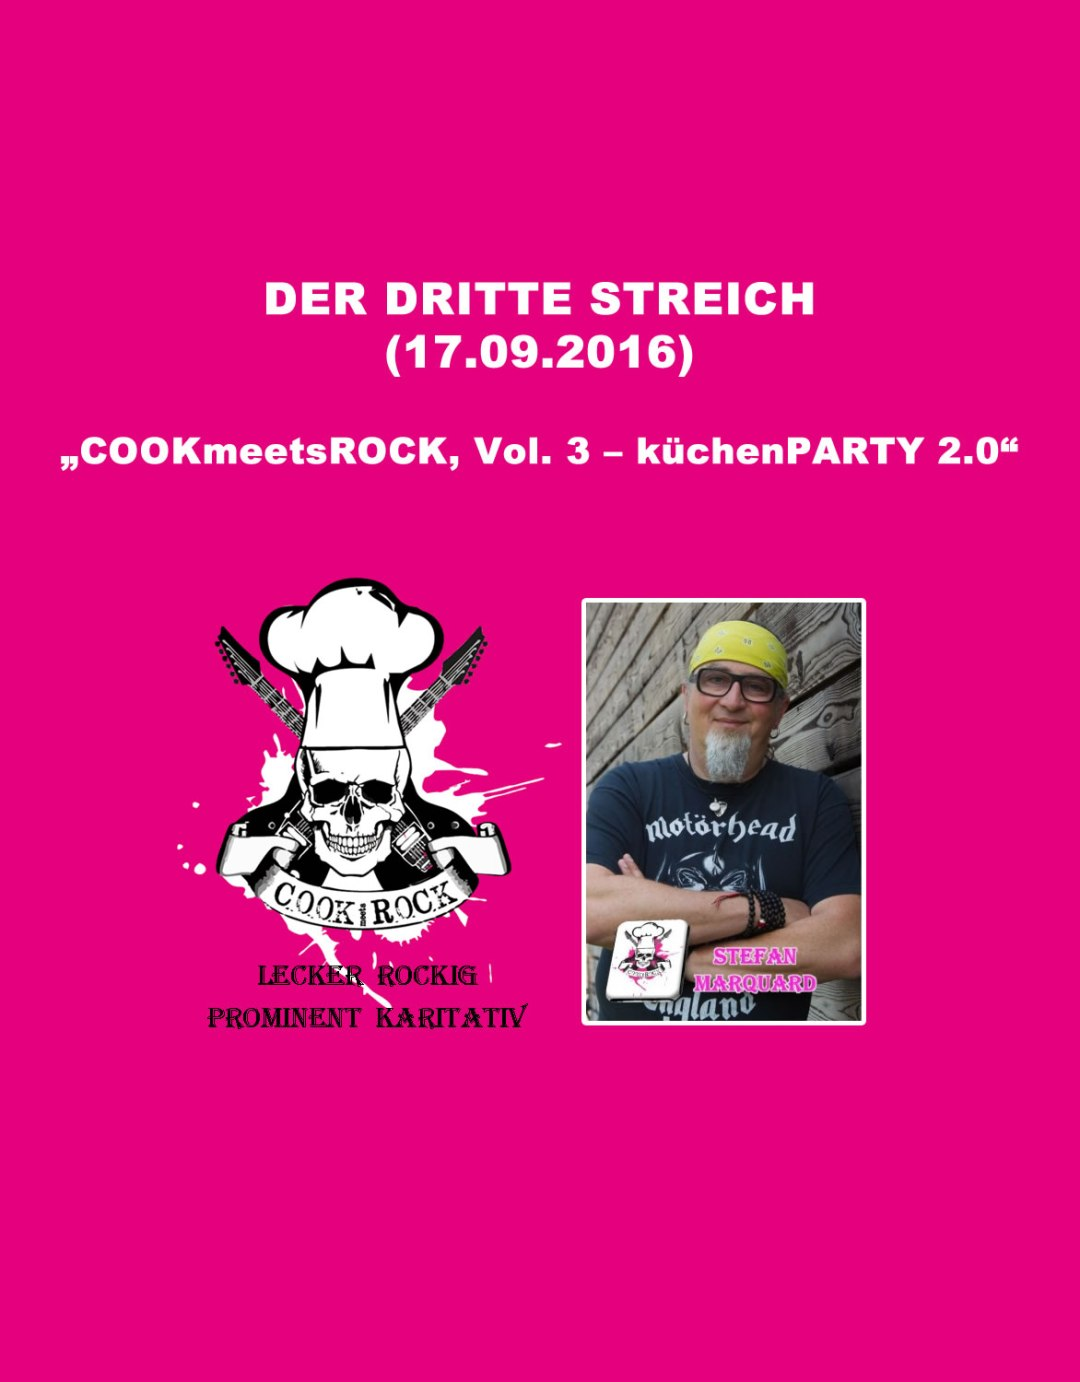 Termine - Dates: 17.09.2016 - COOKmeetsROCK, Vol. 3 – küchenPARTY 2.0